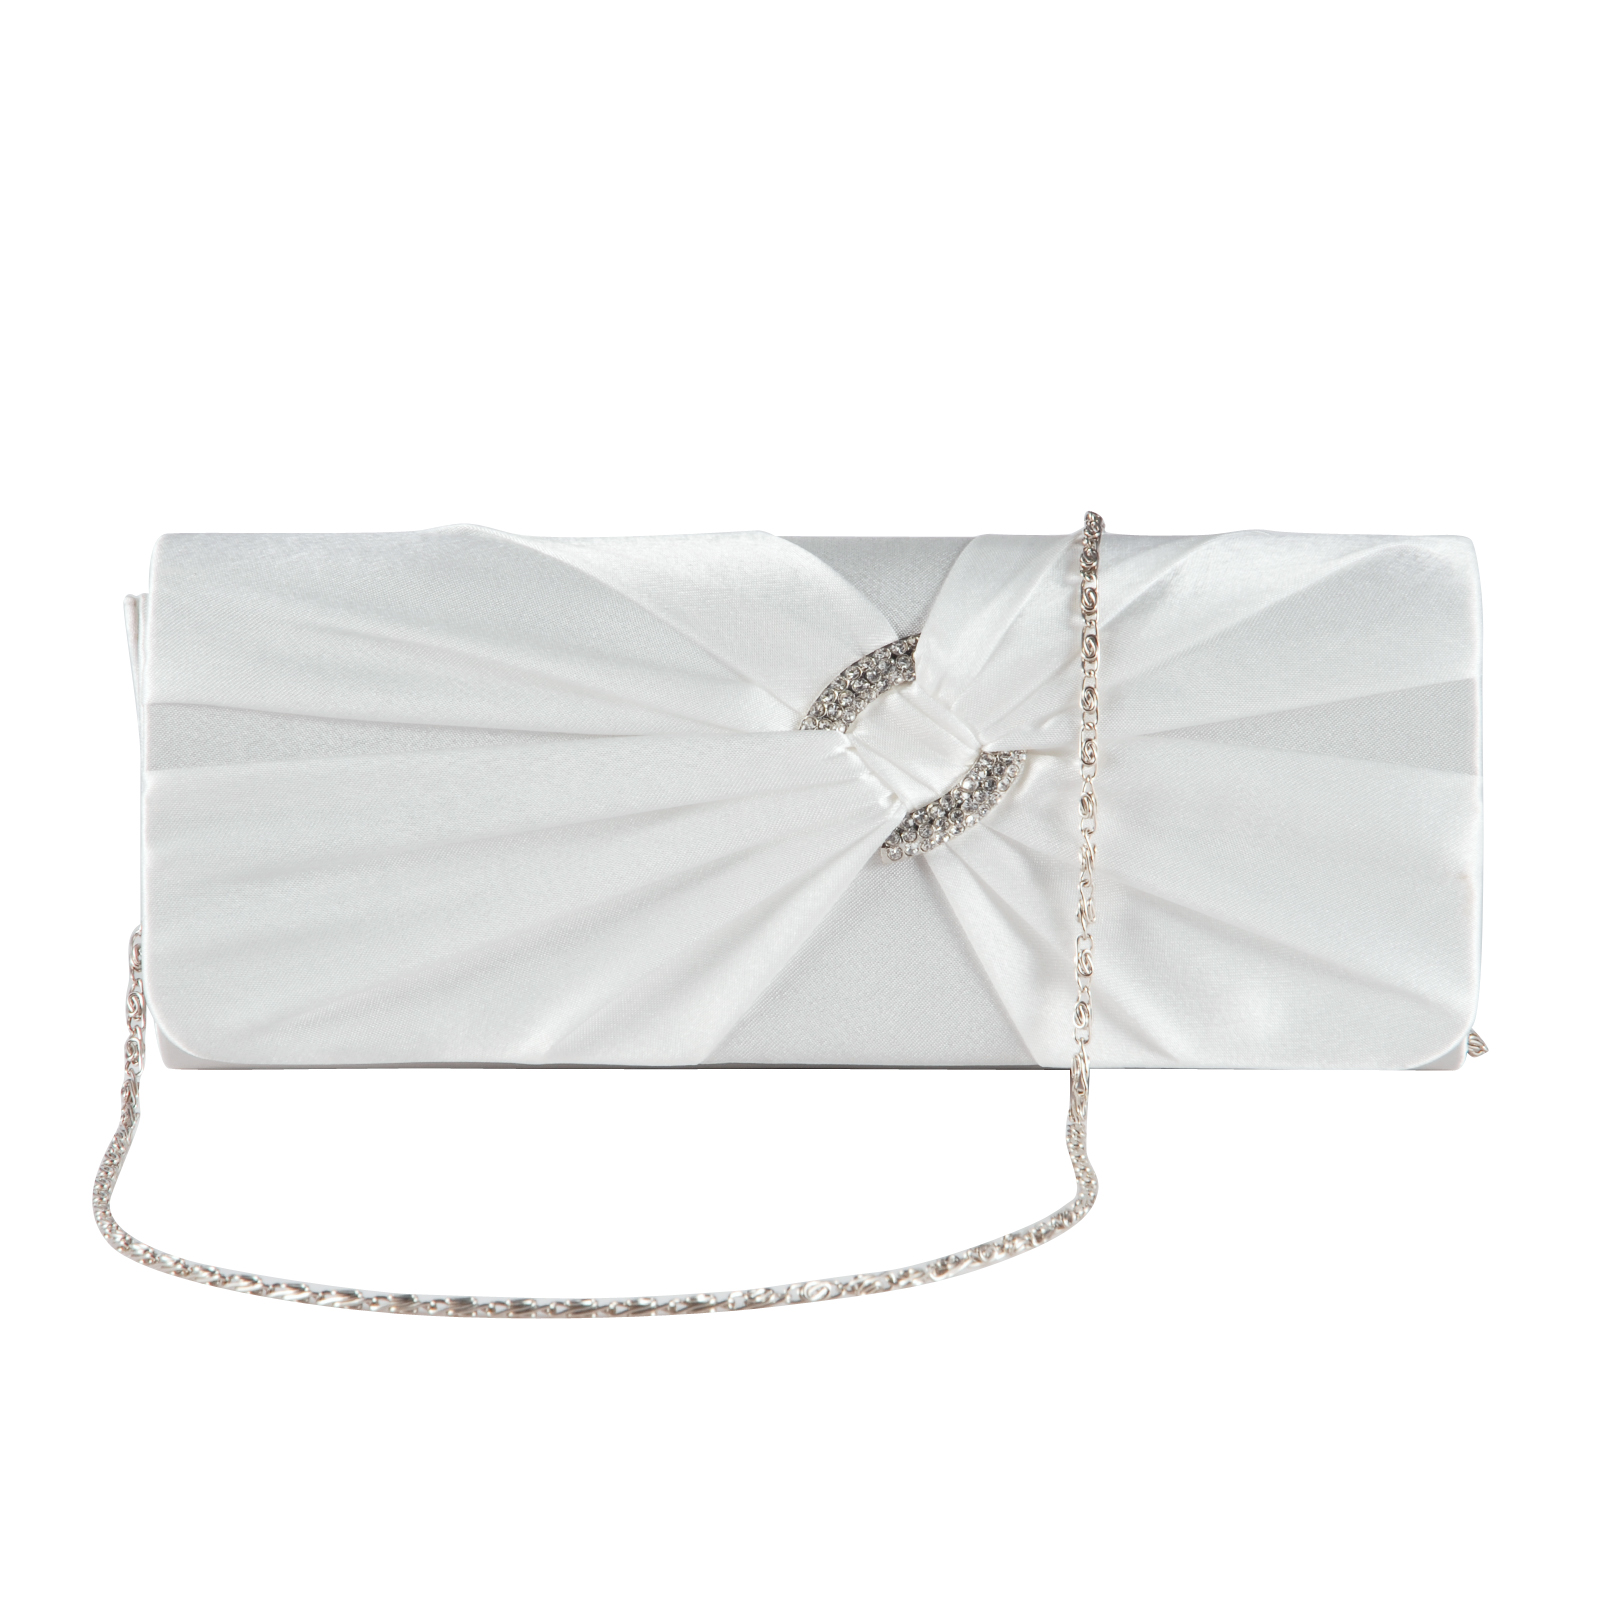 Ivory White Satin Diamante Pleated Evening Clutch Bag Bridal Wedding Party Prom | EBay